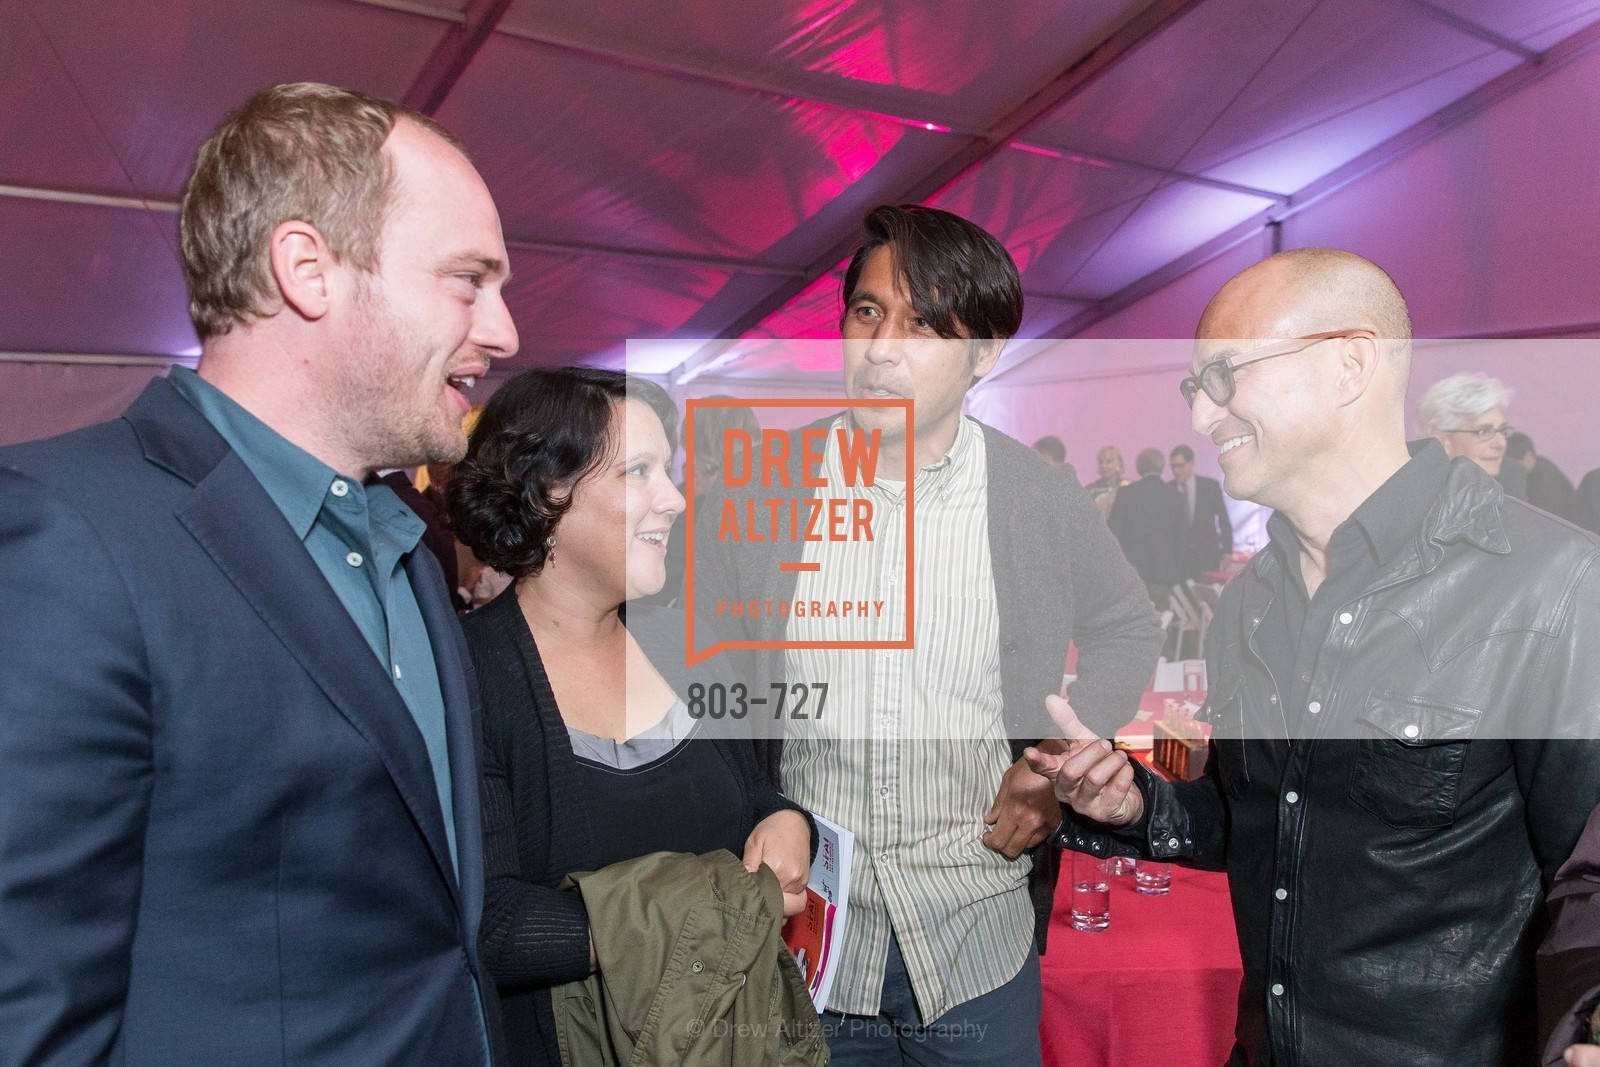 Hesse McGraw, Clare Rojas, Barry McGee, Eric McDougall, SAN FRANCISCO ART INSTITUTE Gala Honoring Art Visionary and Advocate ROSELYNE CHROMAN SWIG, US, May 14th, 2015,Drew Altizer, Drew Altizer Photography, full-service agency, private events, San Francisco photographer, photographer california